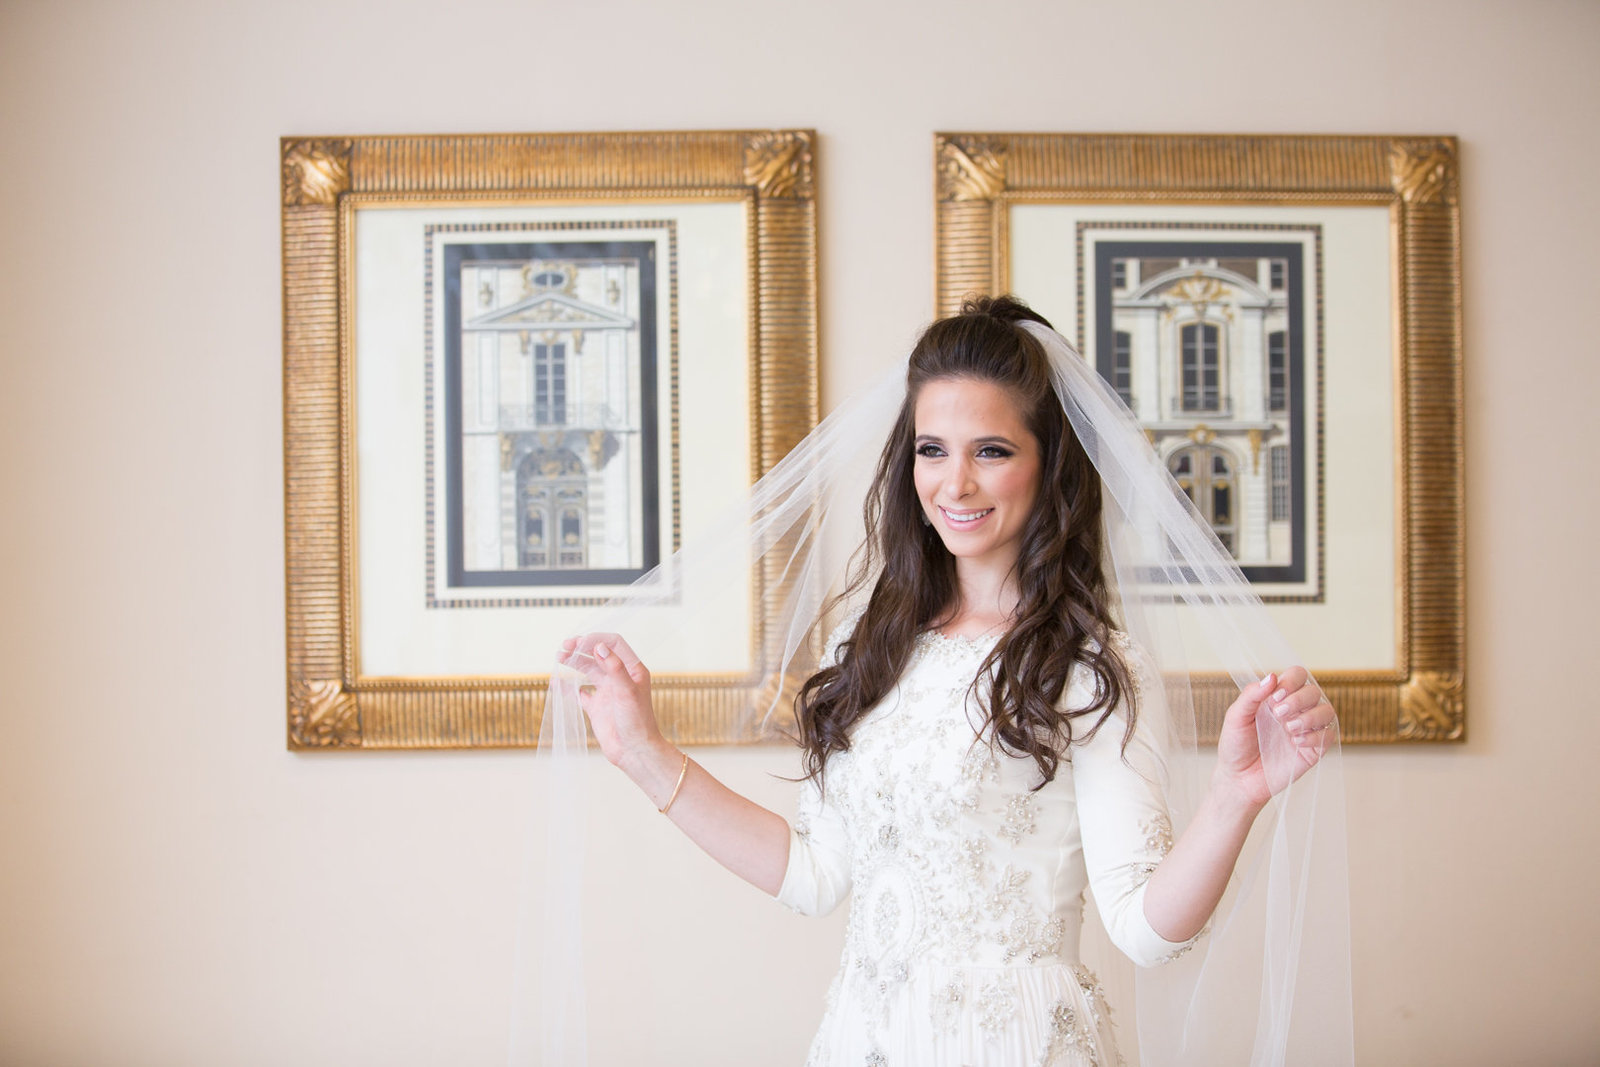 Jewish-Wedding-Photographer-Laibel Schwartz Photography-Photo-7